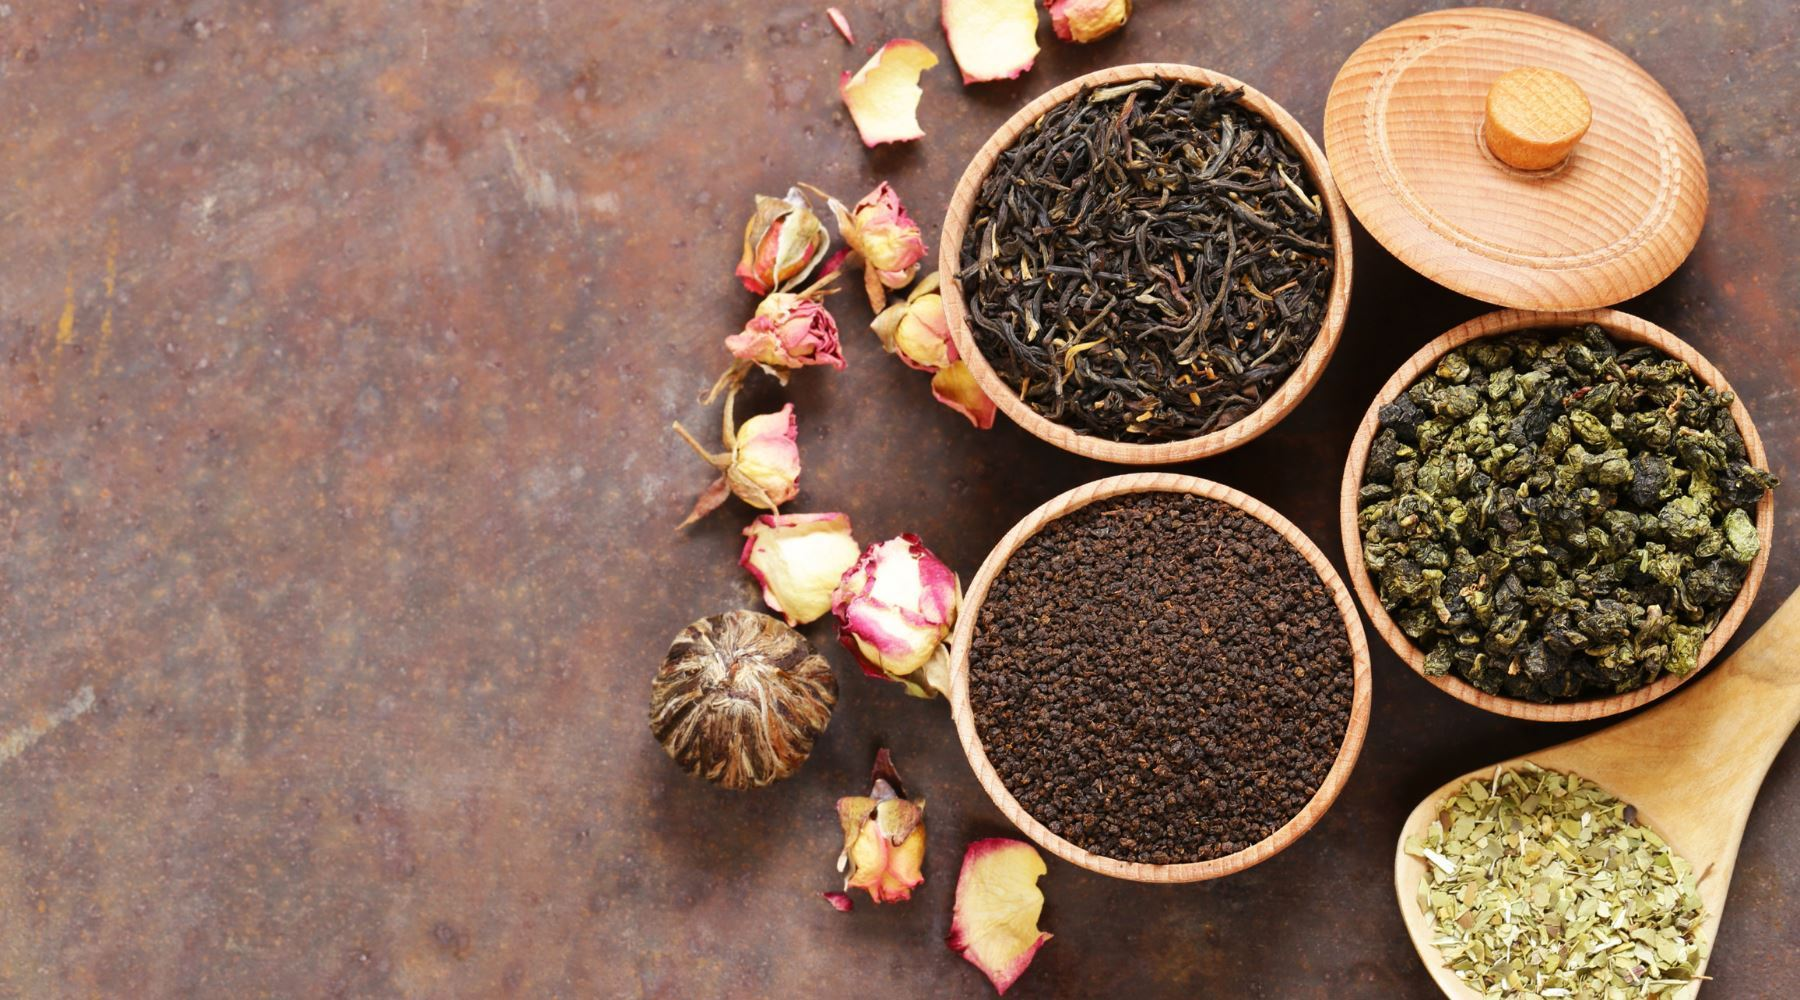 How to Store Loose Leaf Tea Properly